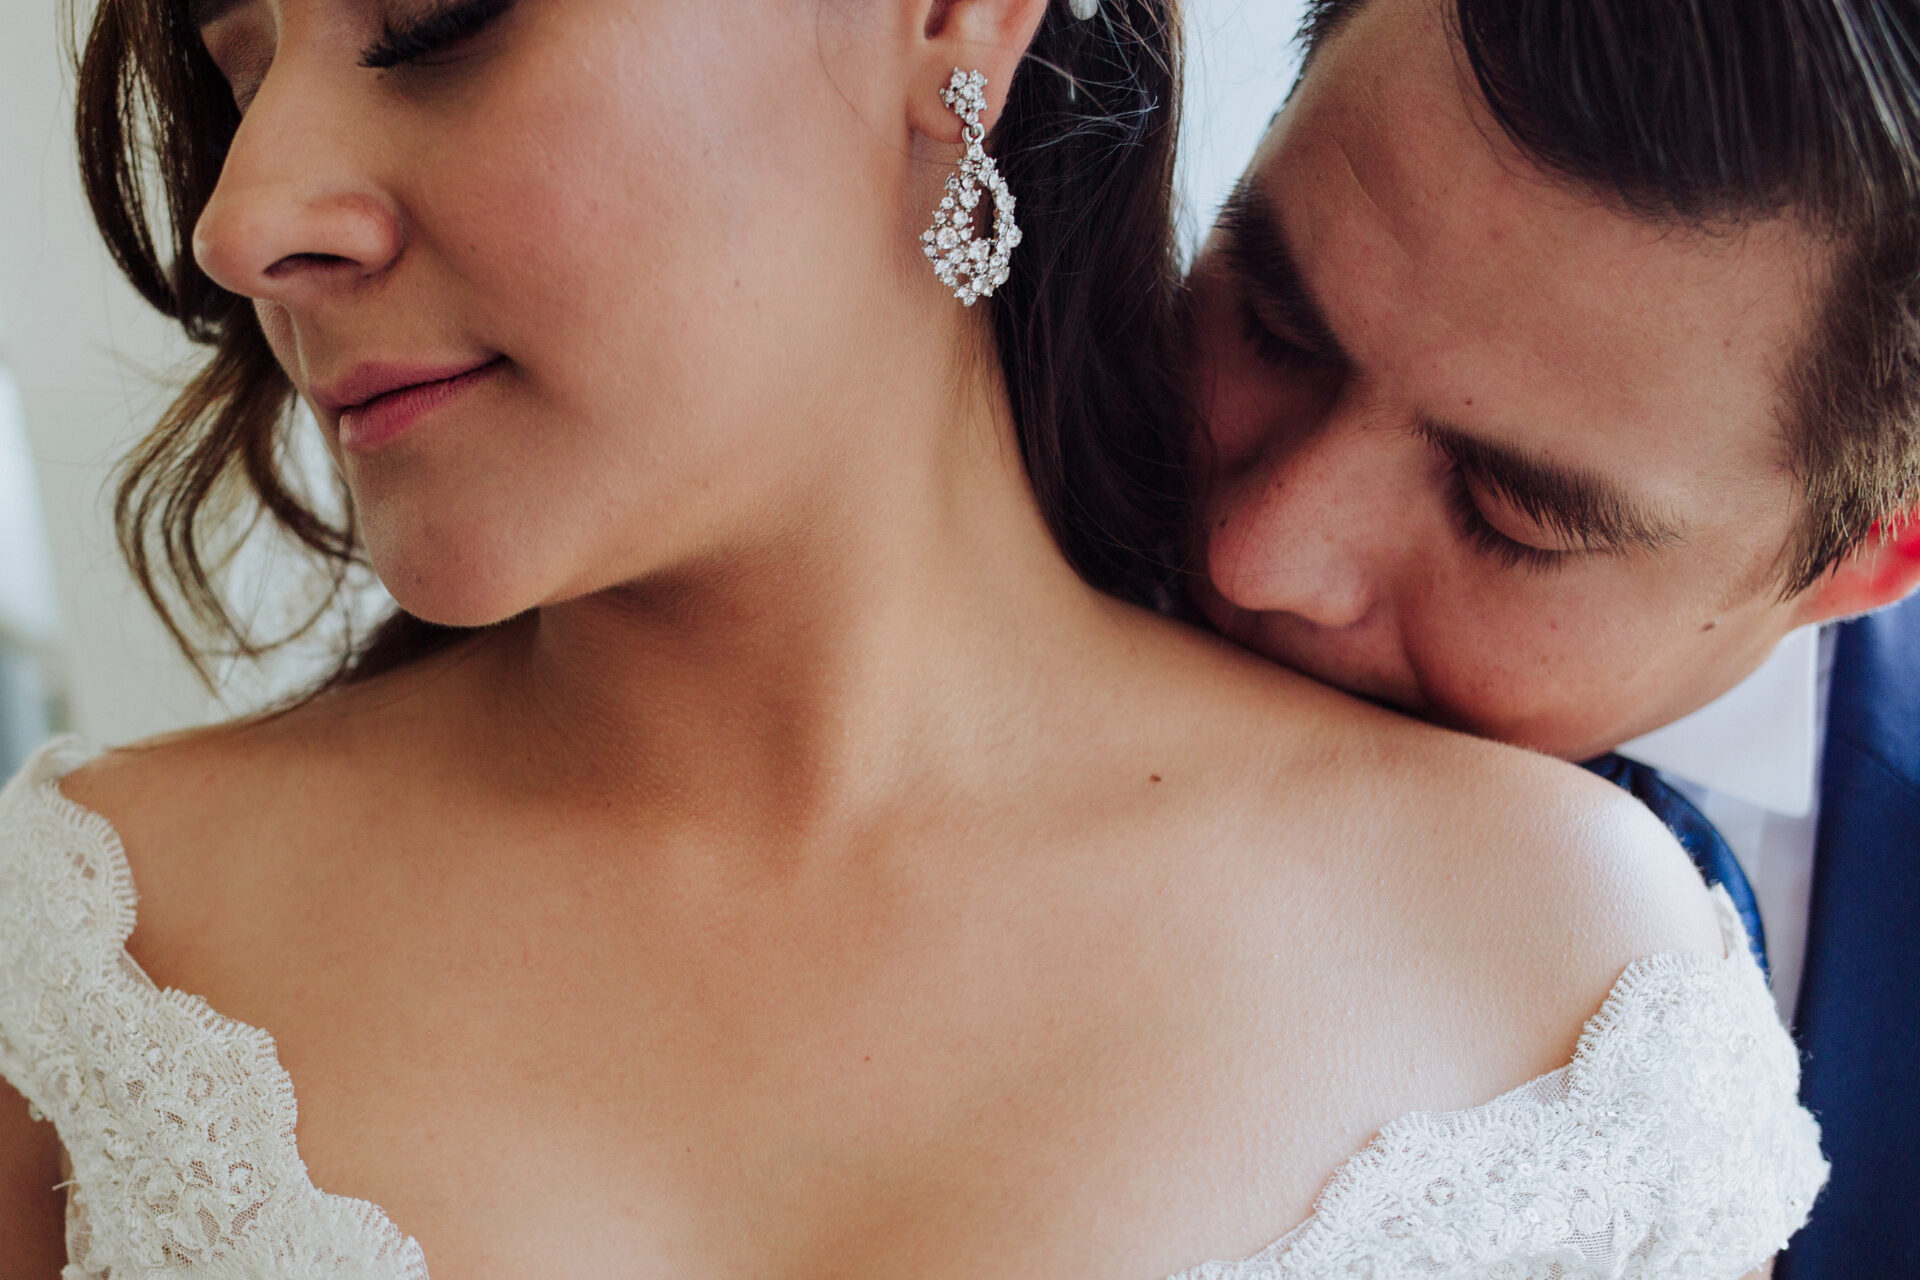 javier_noriega_fotografo_bodas_torreon_coahuila_zacatecas_wedding_photographer25a